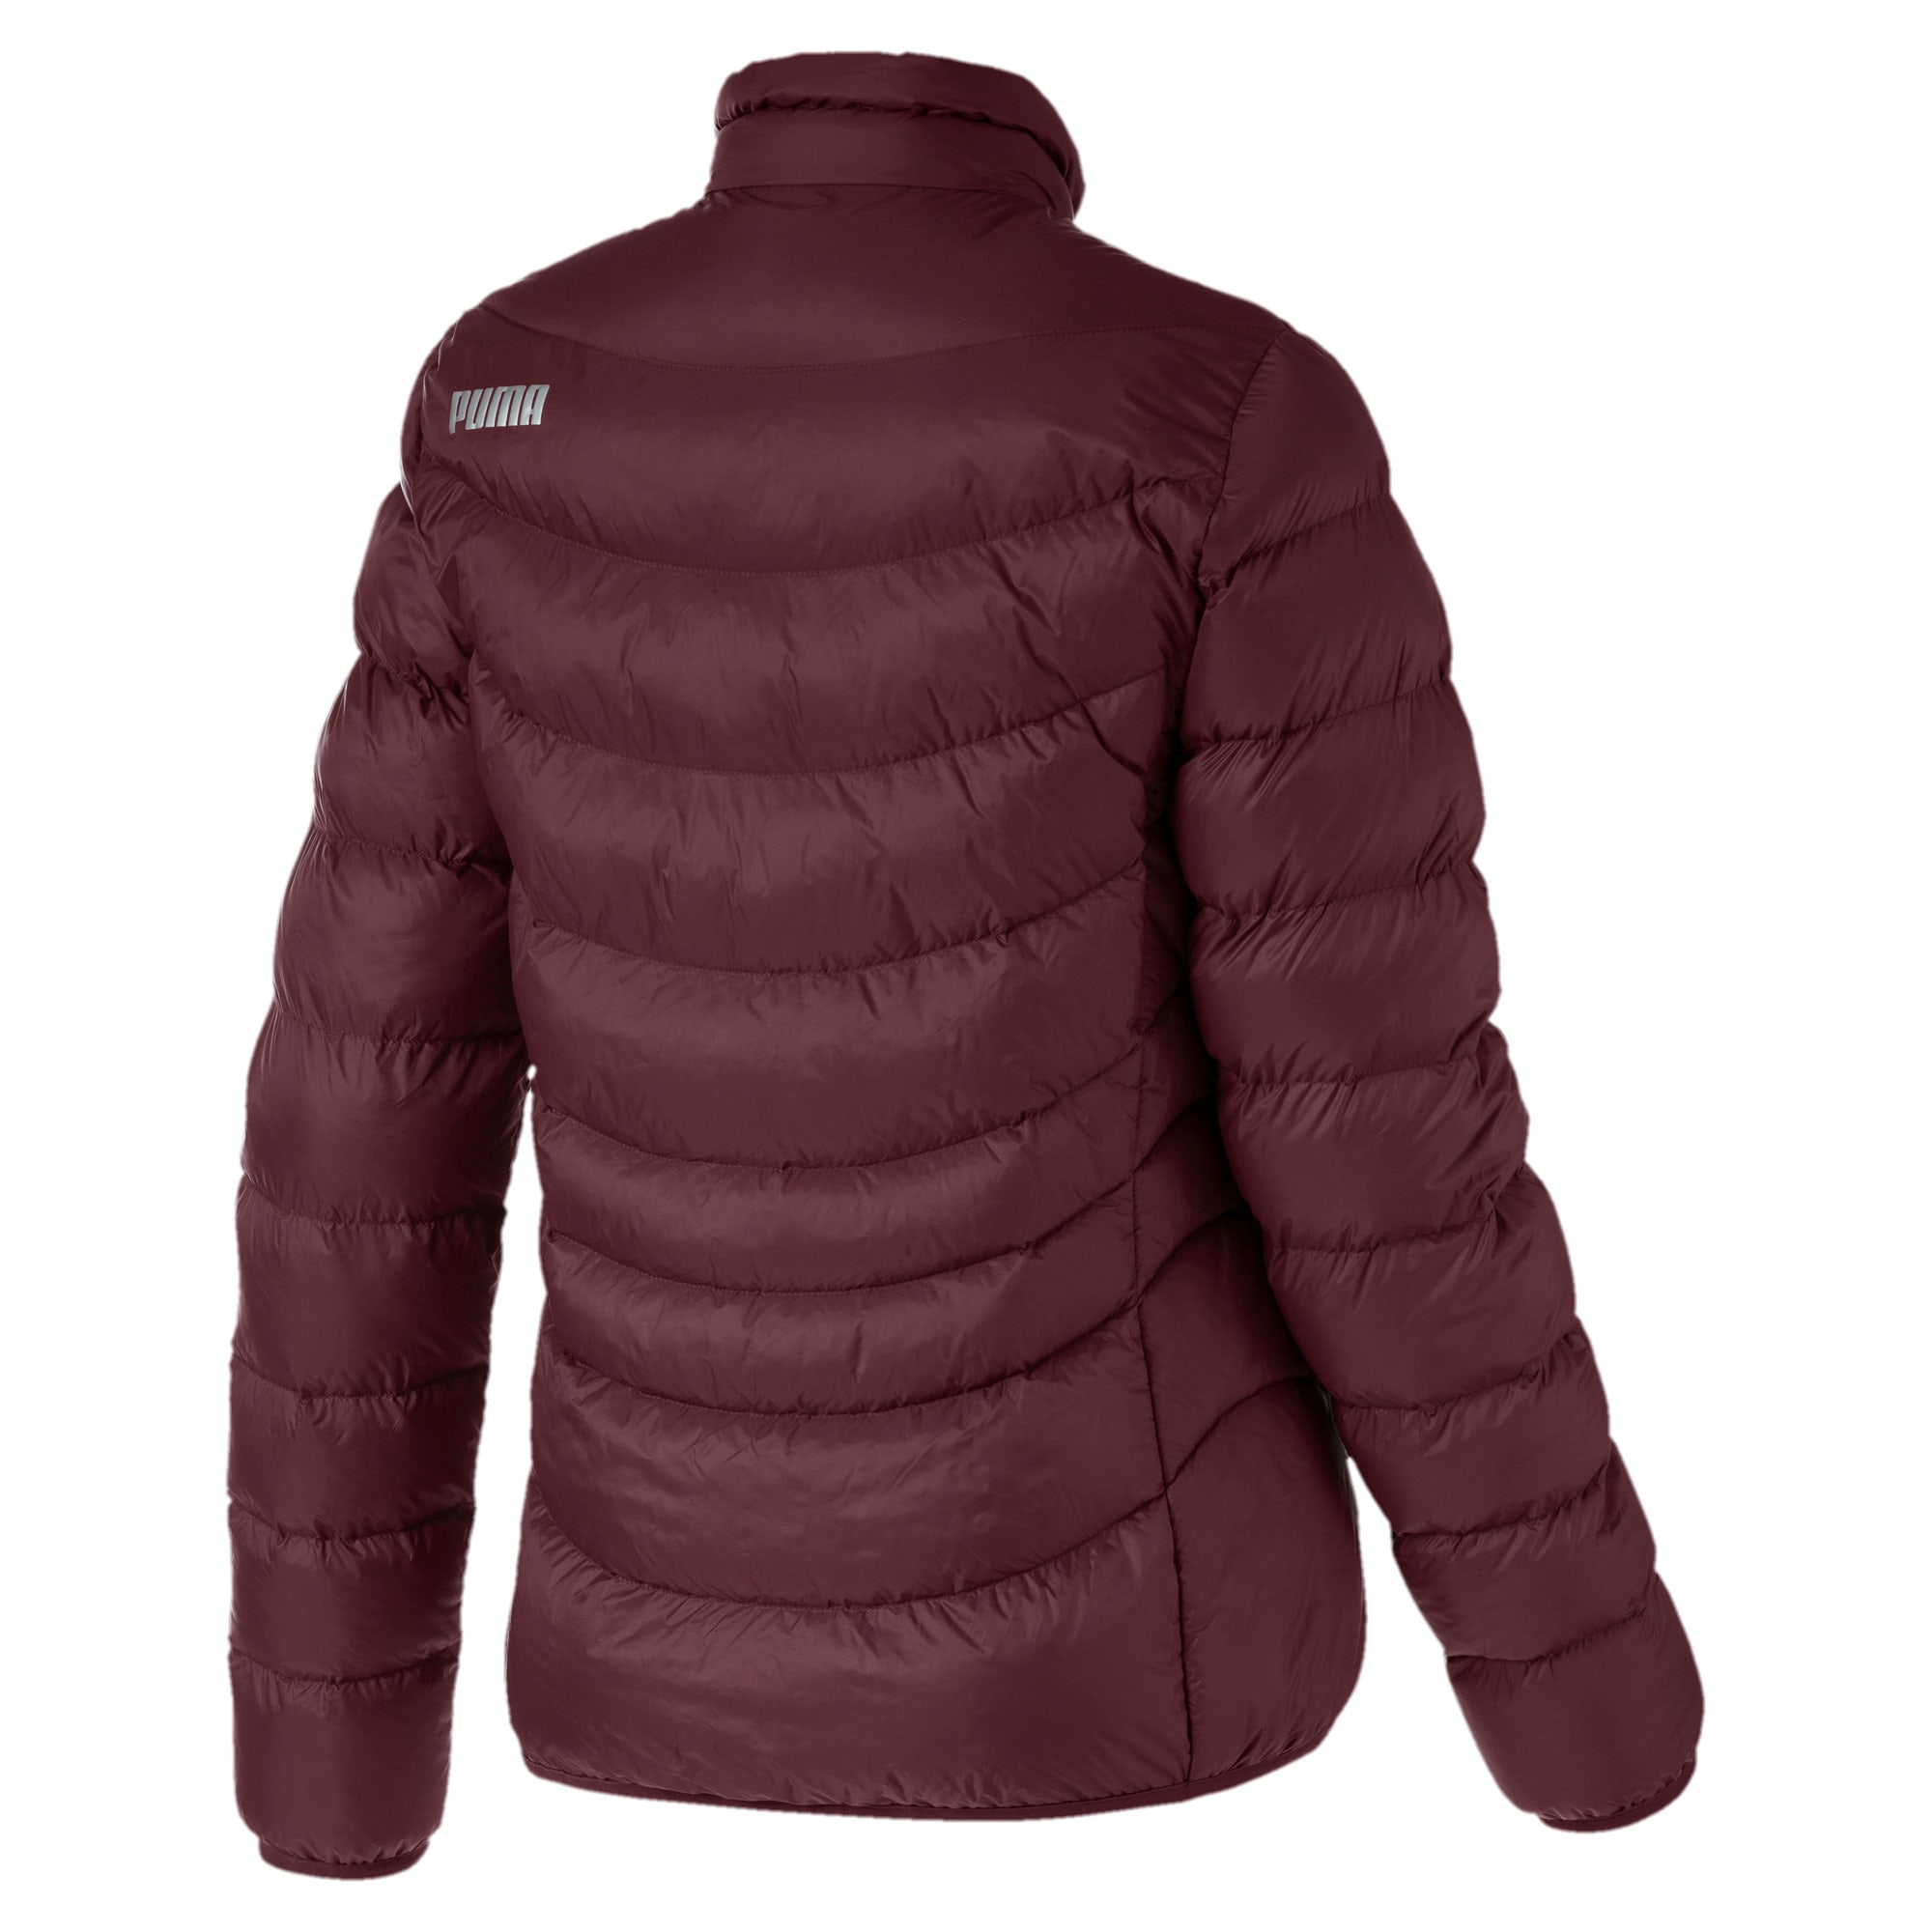 Thumbnail 5 of Ultralight warmCELL Damen Jacke, Vineyard Wine, medium